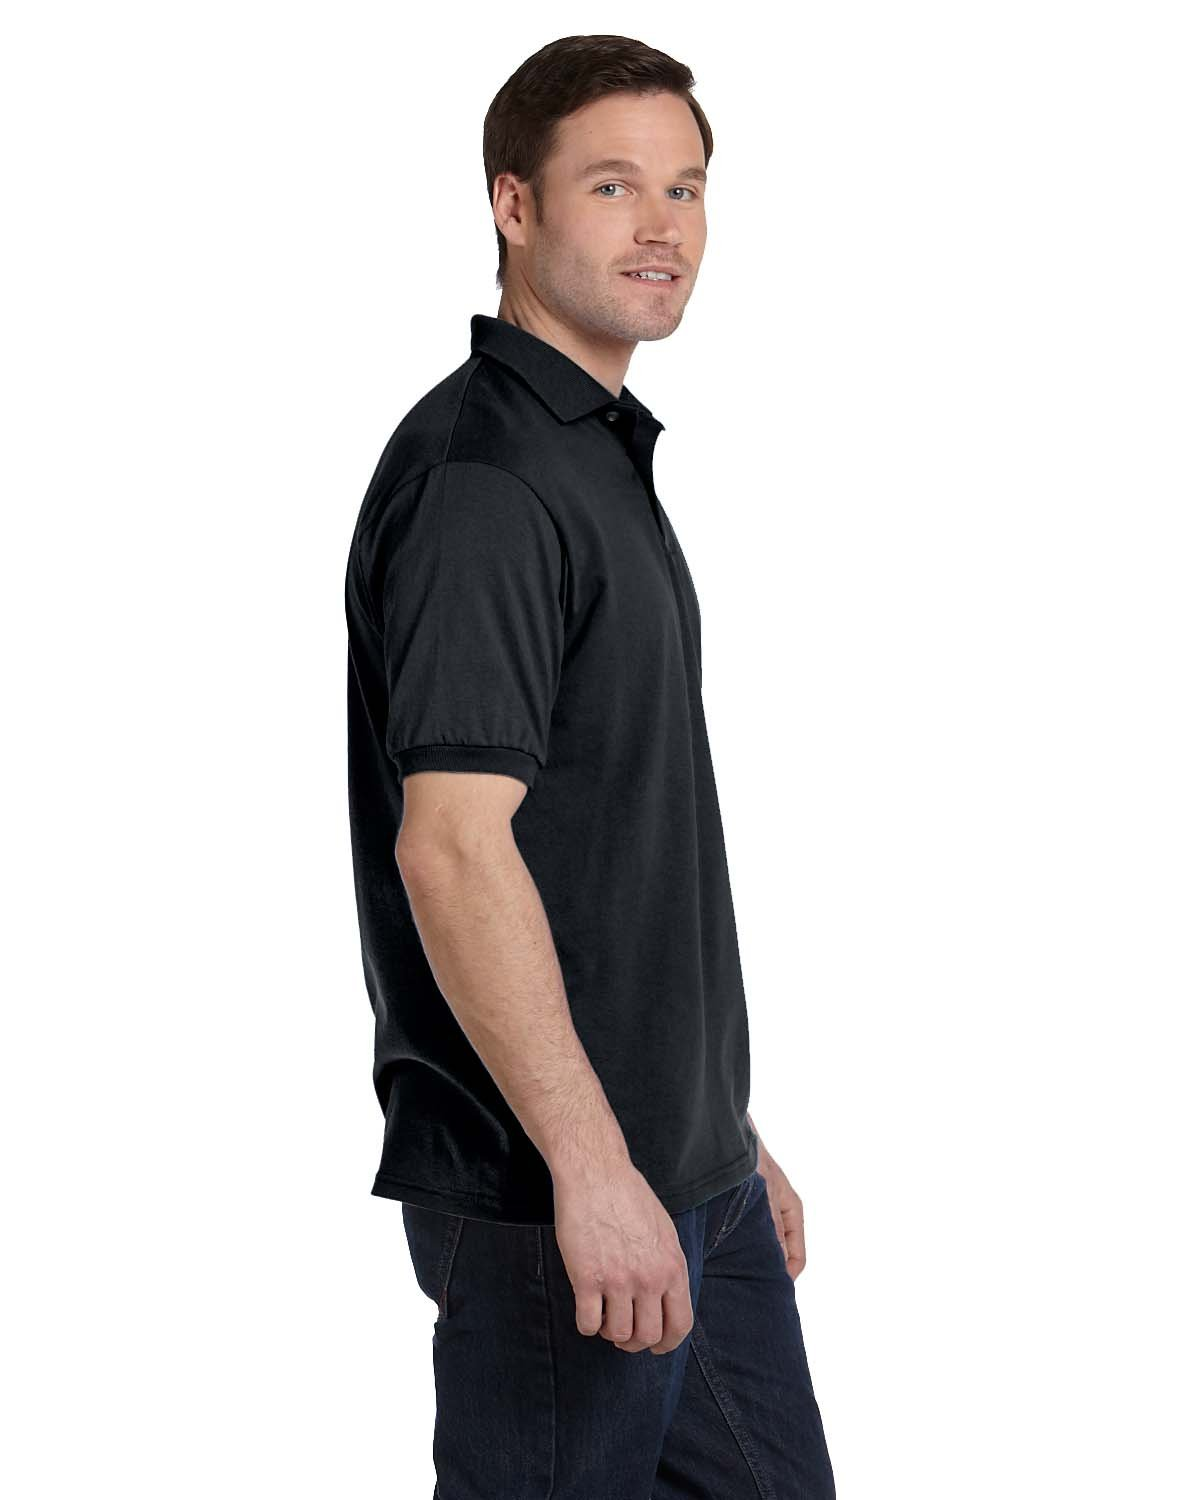 94daf6dd Front Back Side · Gallery View Download HiRes Design Studio. 054 Hanes  Adult 5.2 oz., 50/50 EcoSmart® Jersey Knit Polo